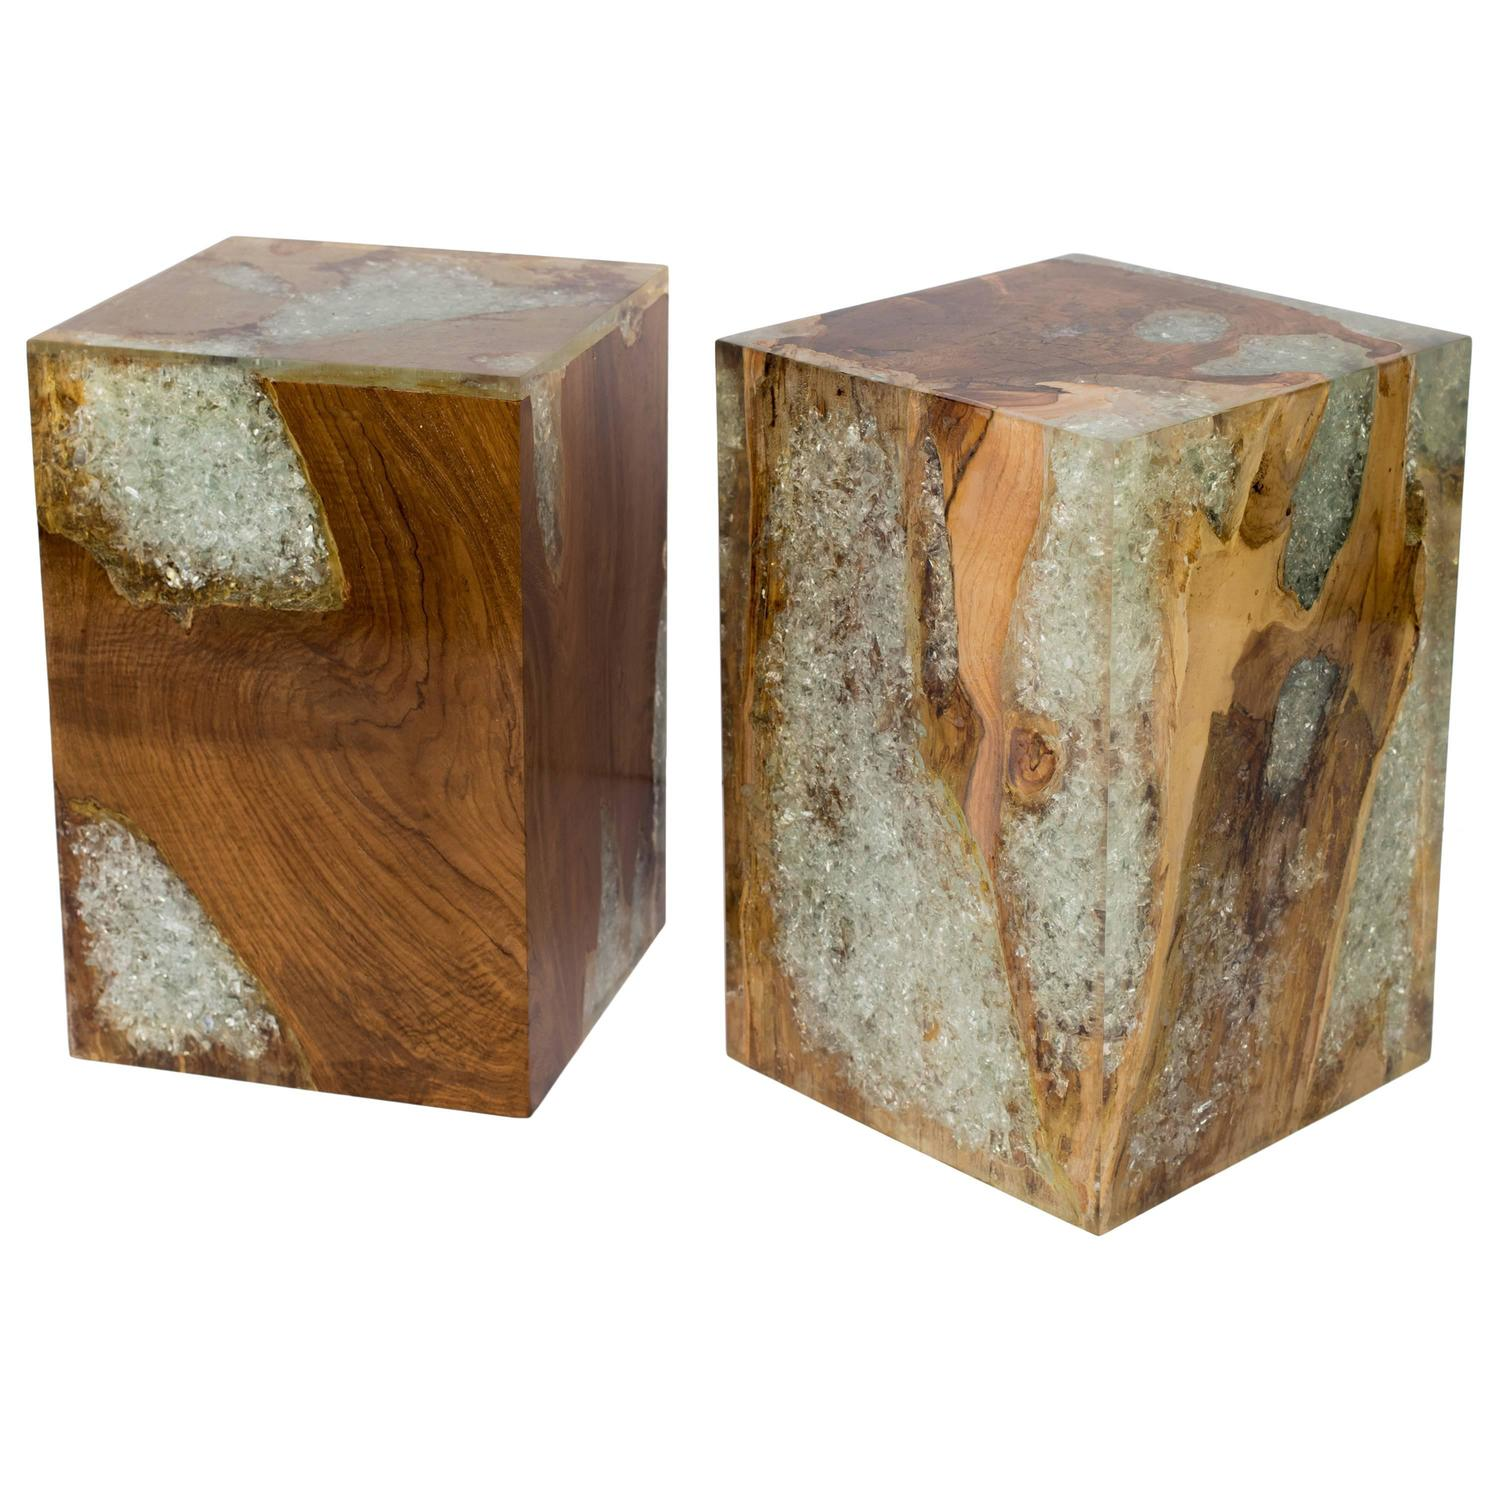 Wood Cube End Table Organic Teakwood And Cracked Resin Cube Tables For Sale At